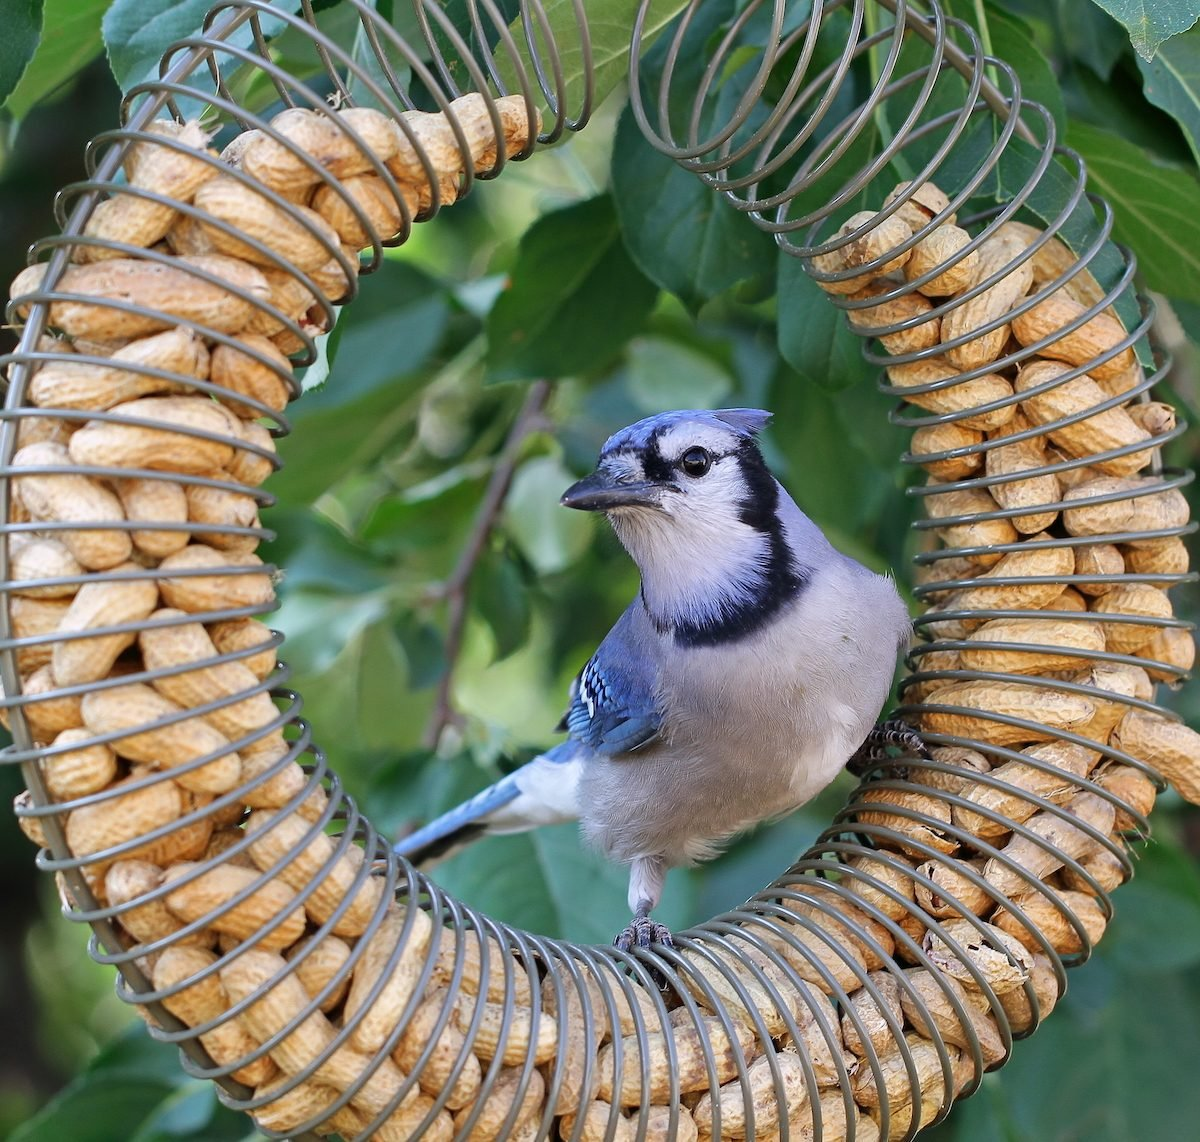 Blue jay on peanut bird feeder